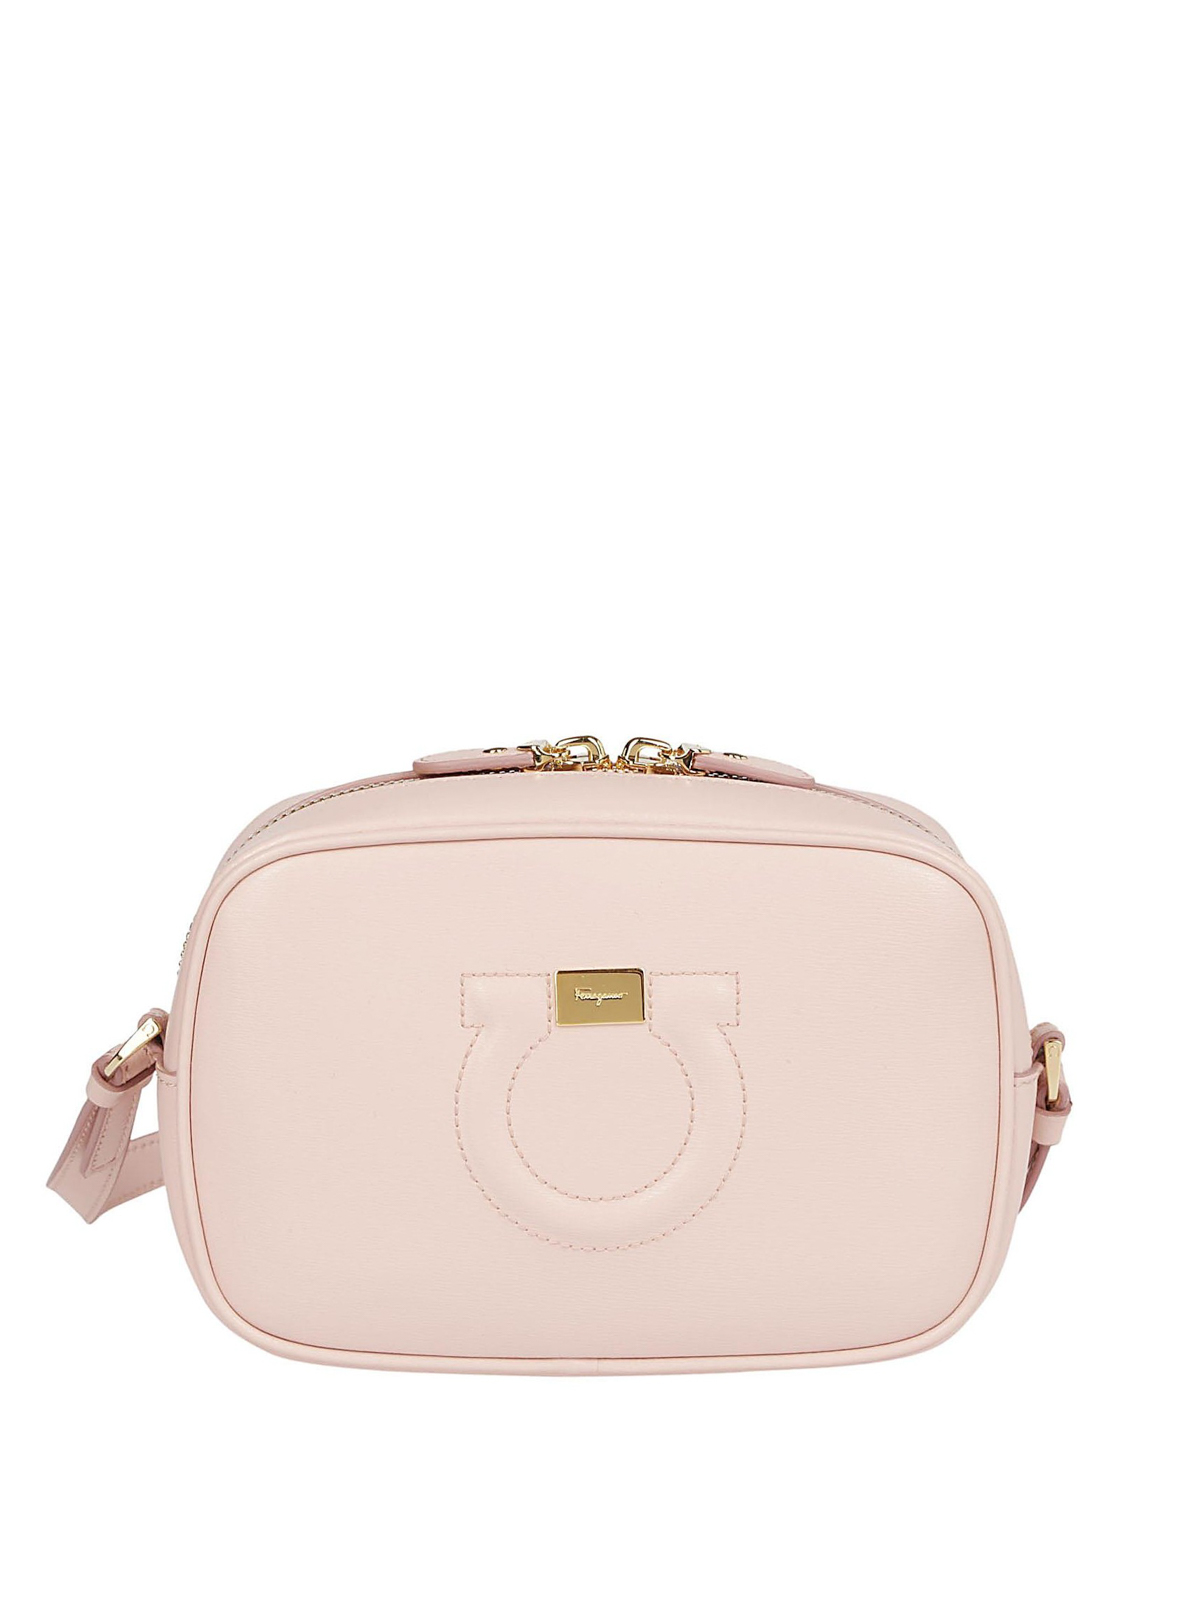 1ad71b86fd SALVATORE FERRAGAMO  cross body bags - Gancini bonbon calfskin small camera  bag